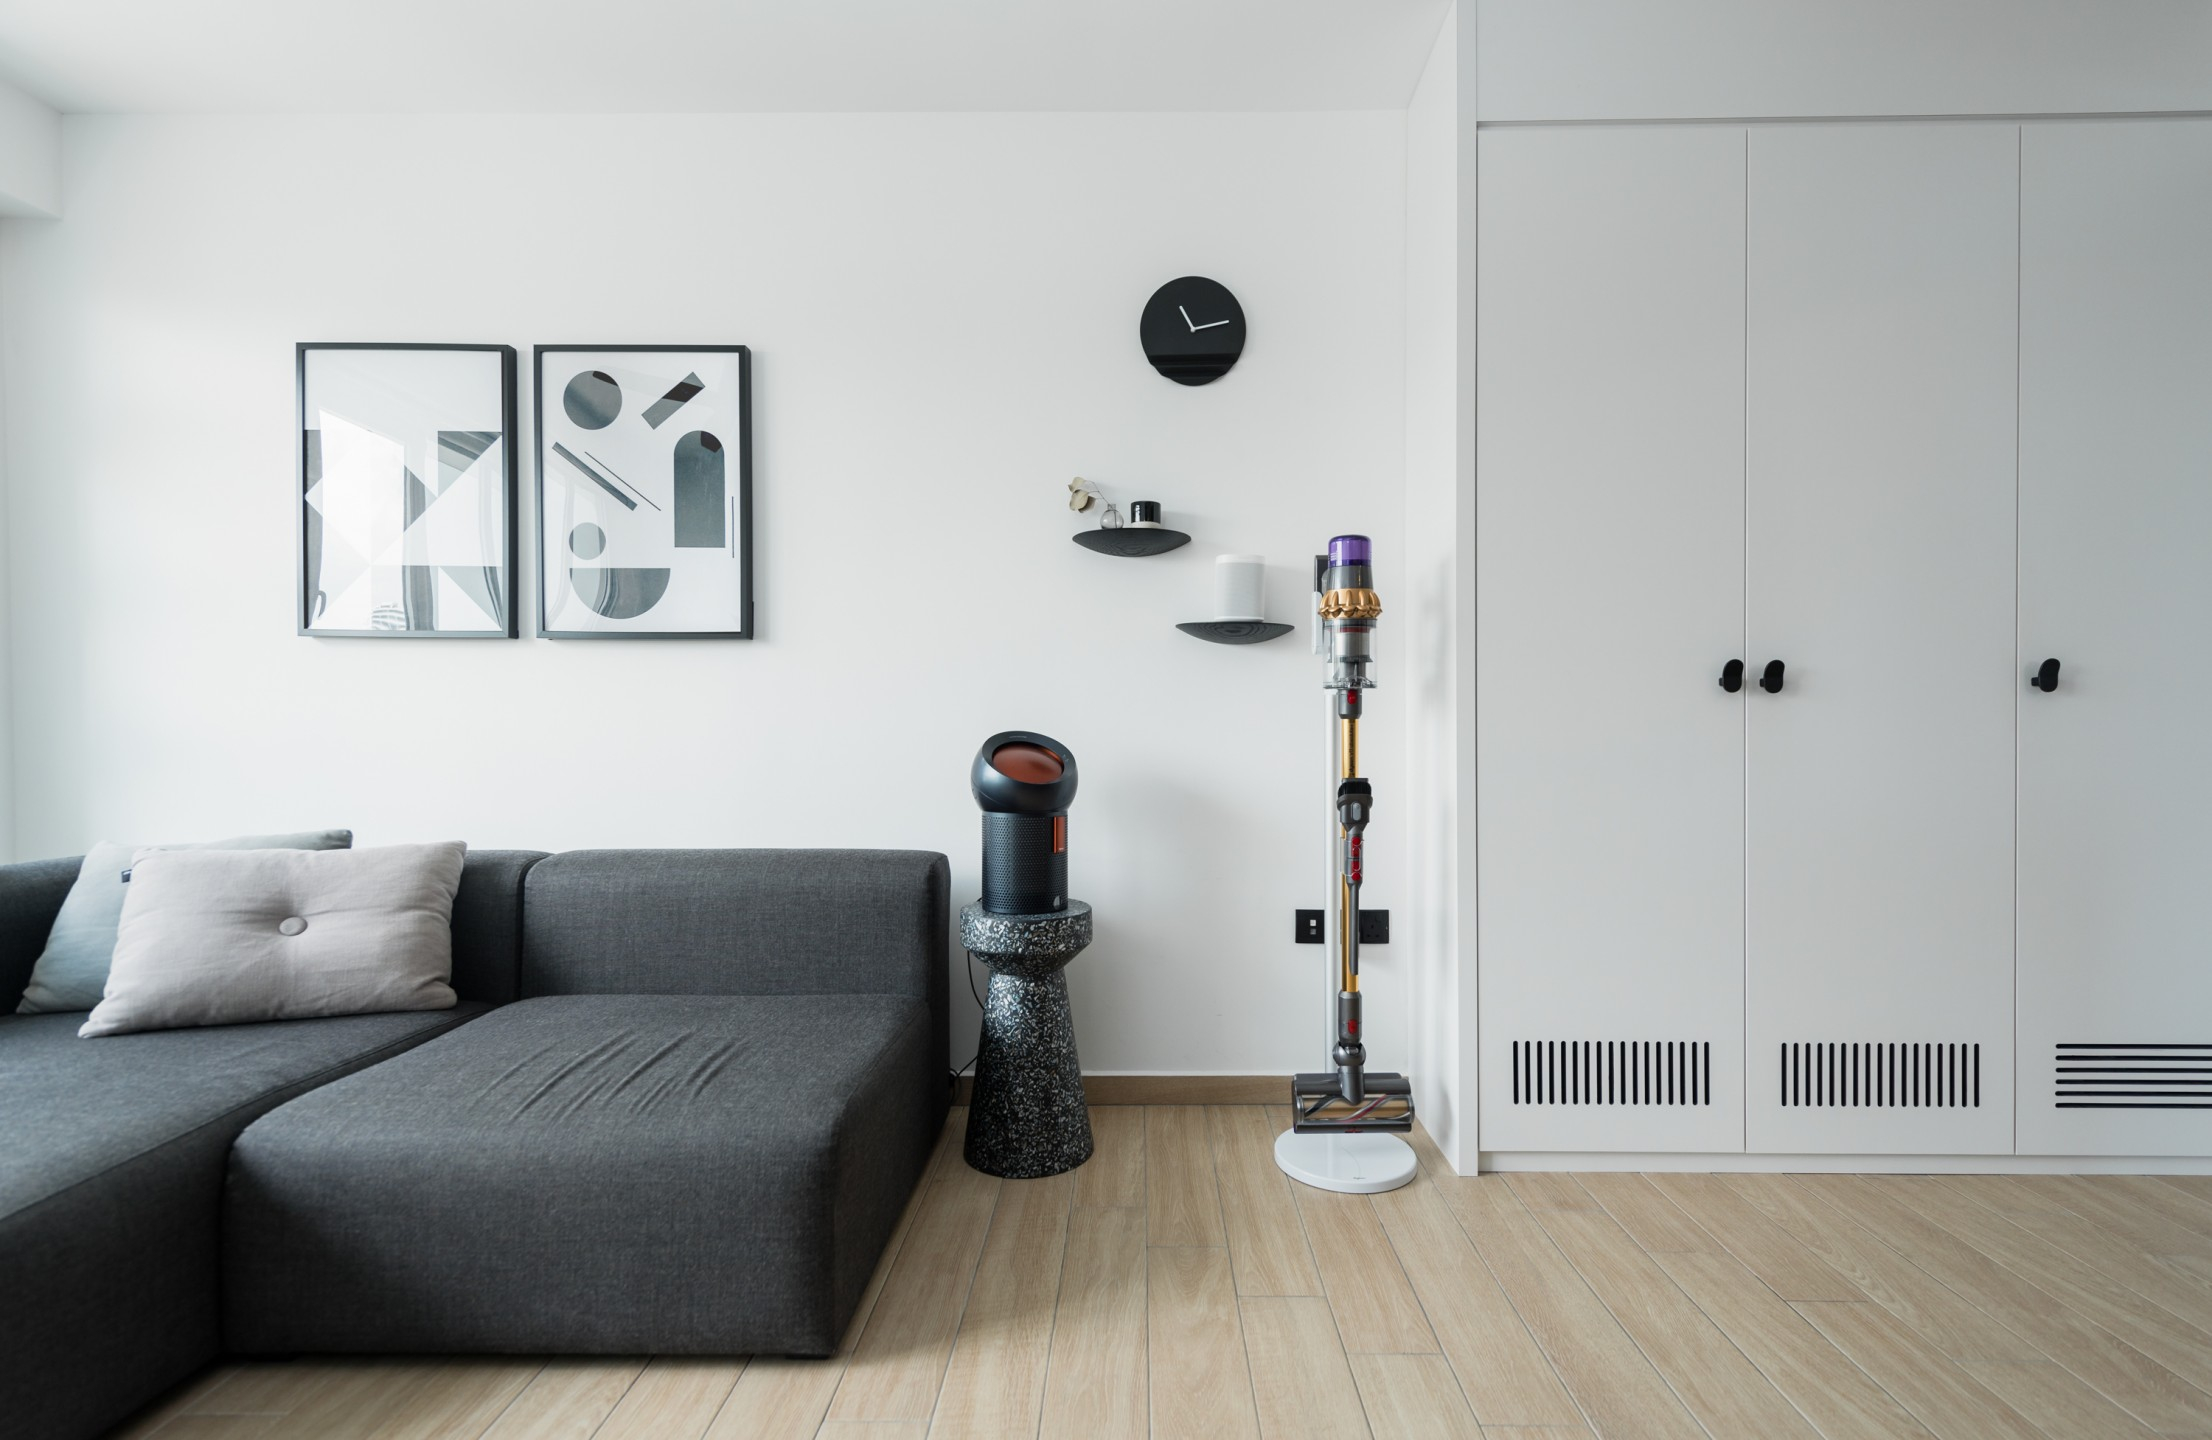 squarerooms-dyson-home-appliance-lifestyle-monochromatic-sleek-living-room-grey